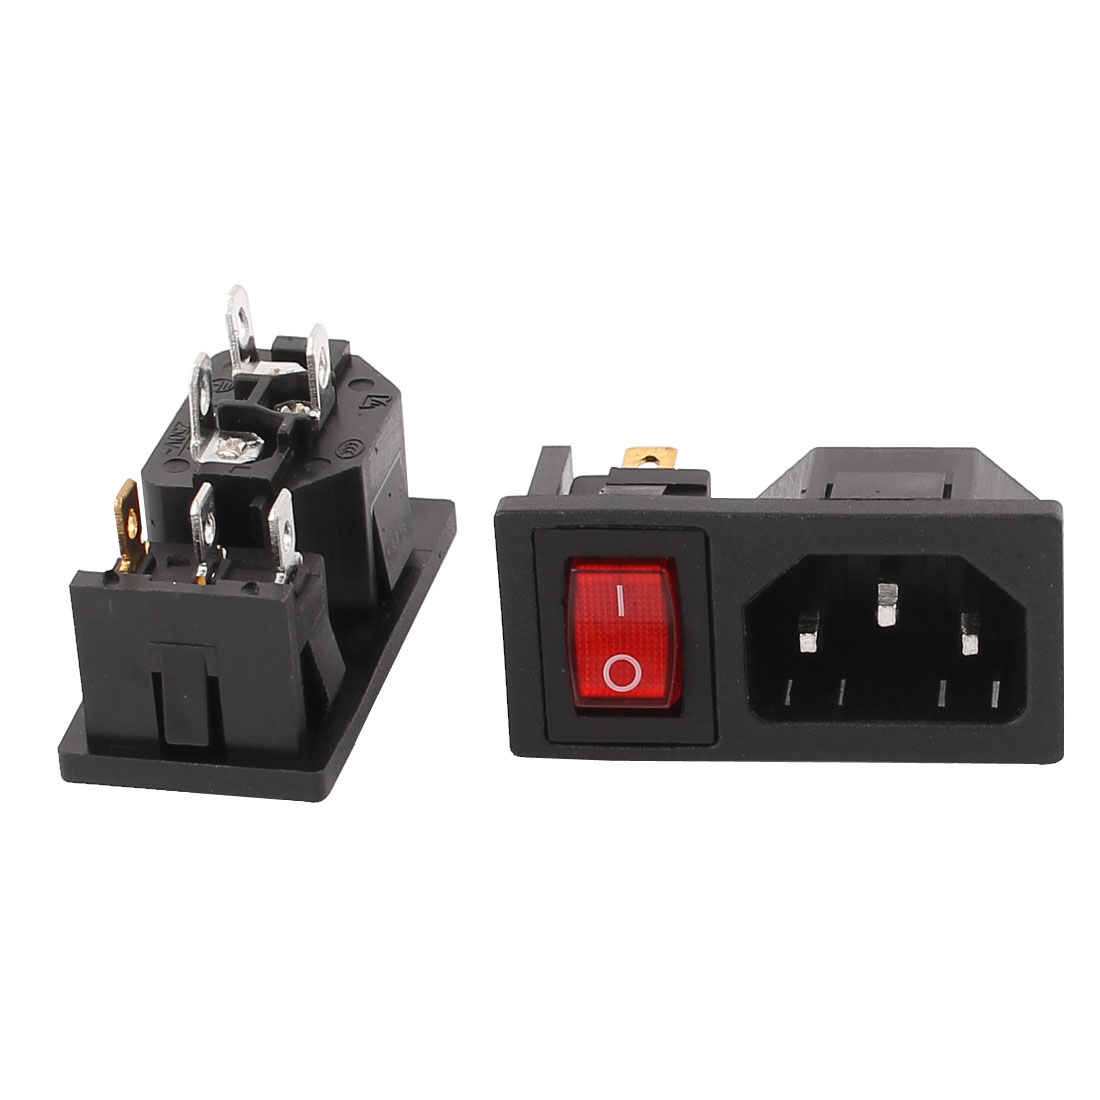 2 Pcs 250V 10A 3 Terminals Red Lamp Panel Mounted Inlet Male Power Socket Connector